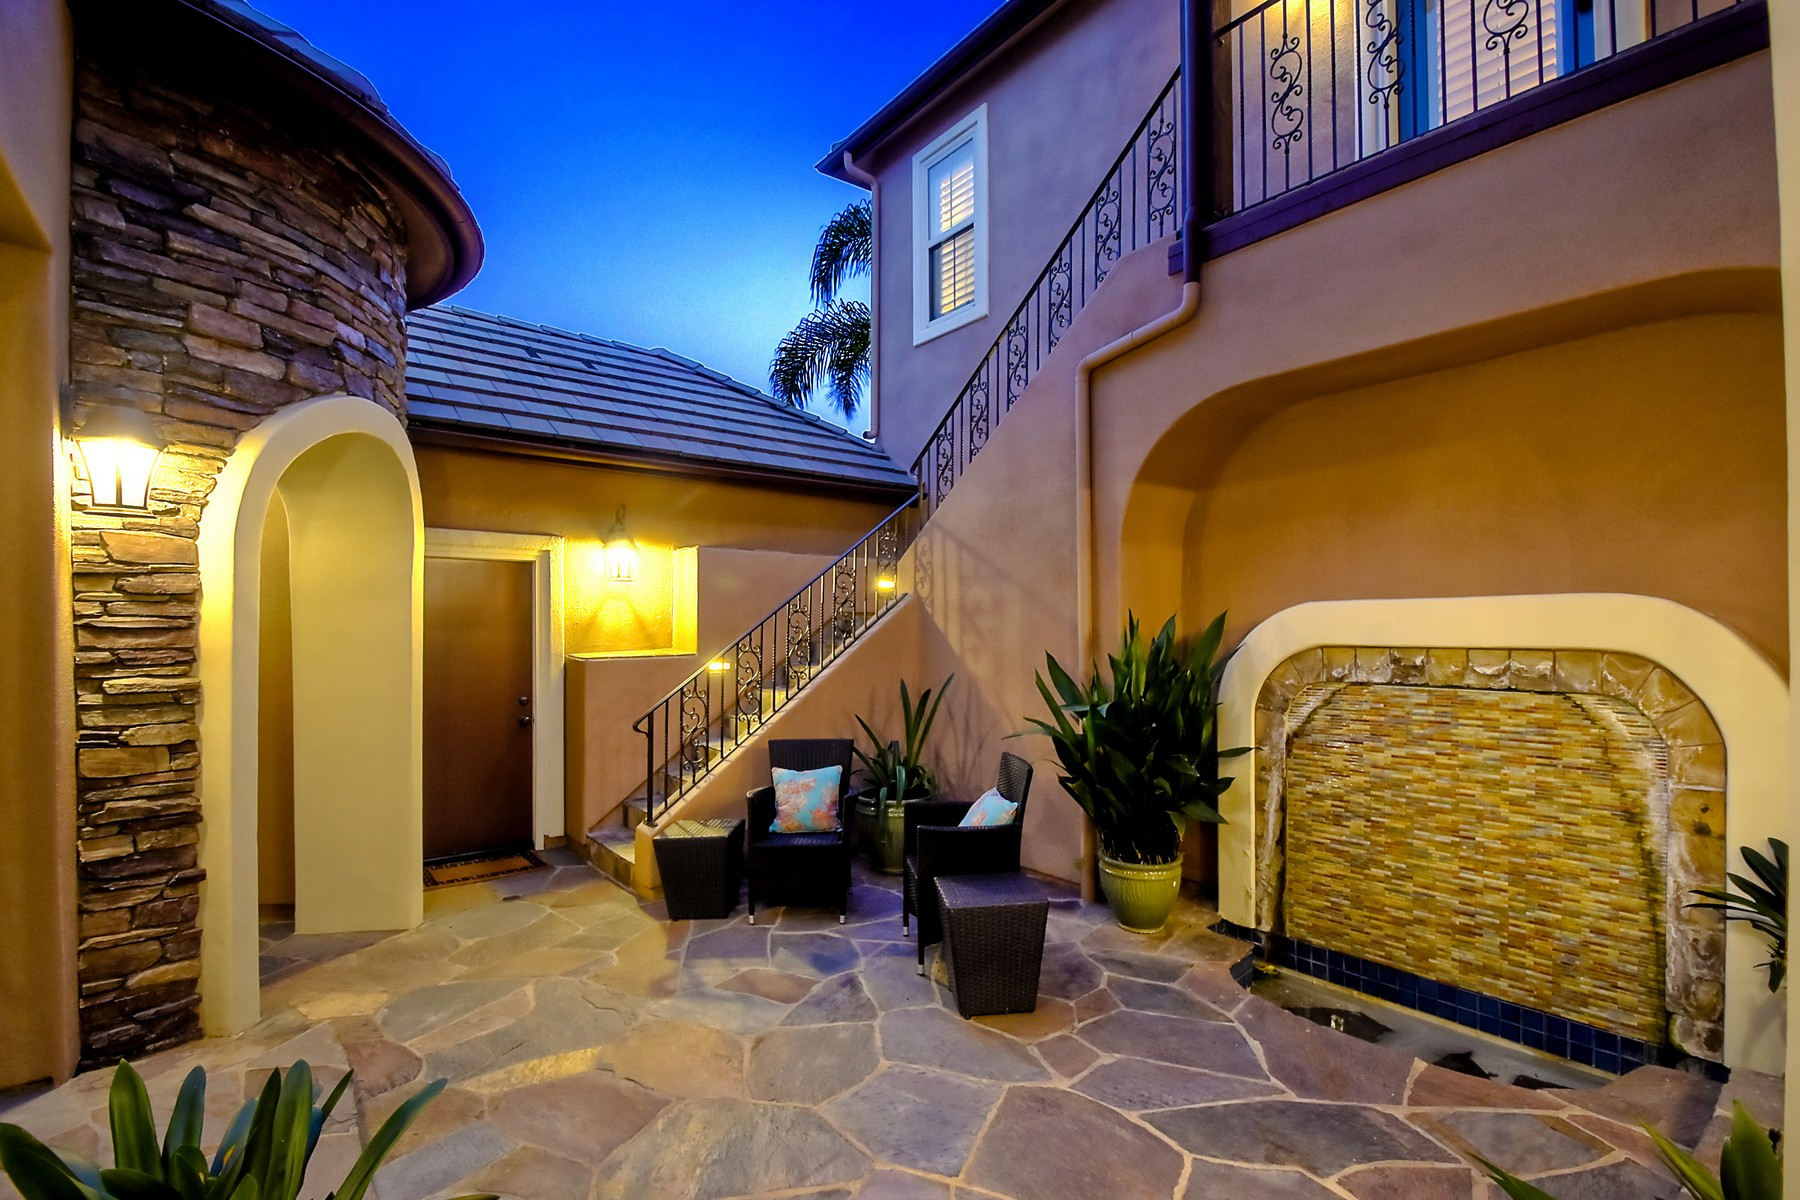 Additional photo for property listing at 10804 Heather Ridge Drive  San Diego, California 92130 United States